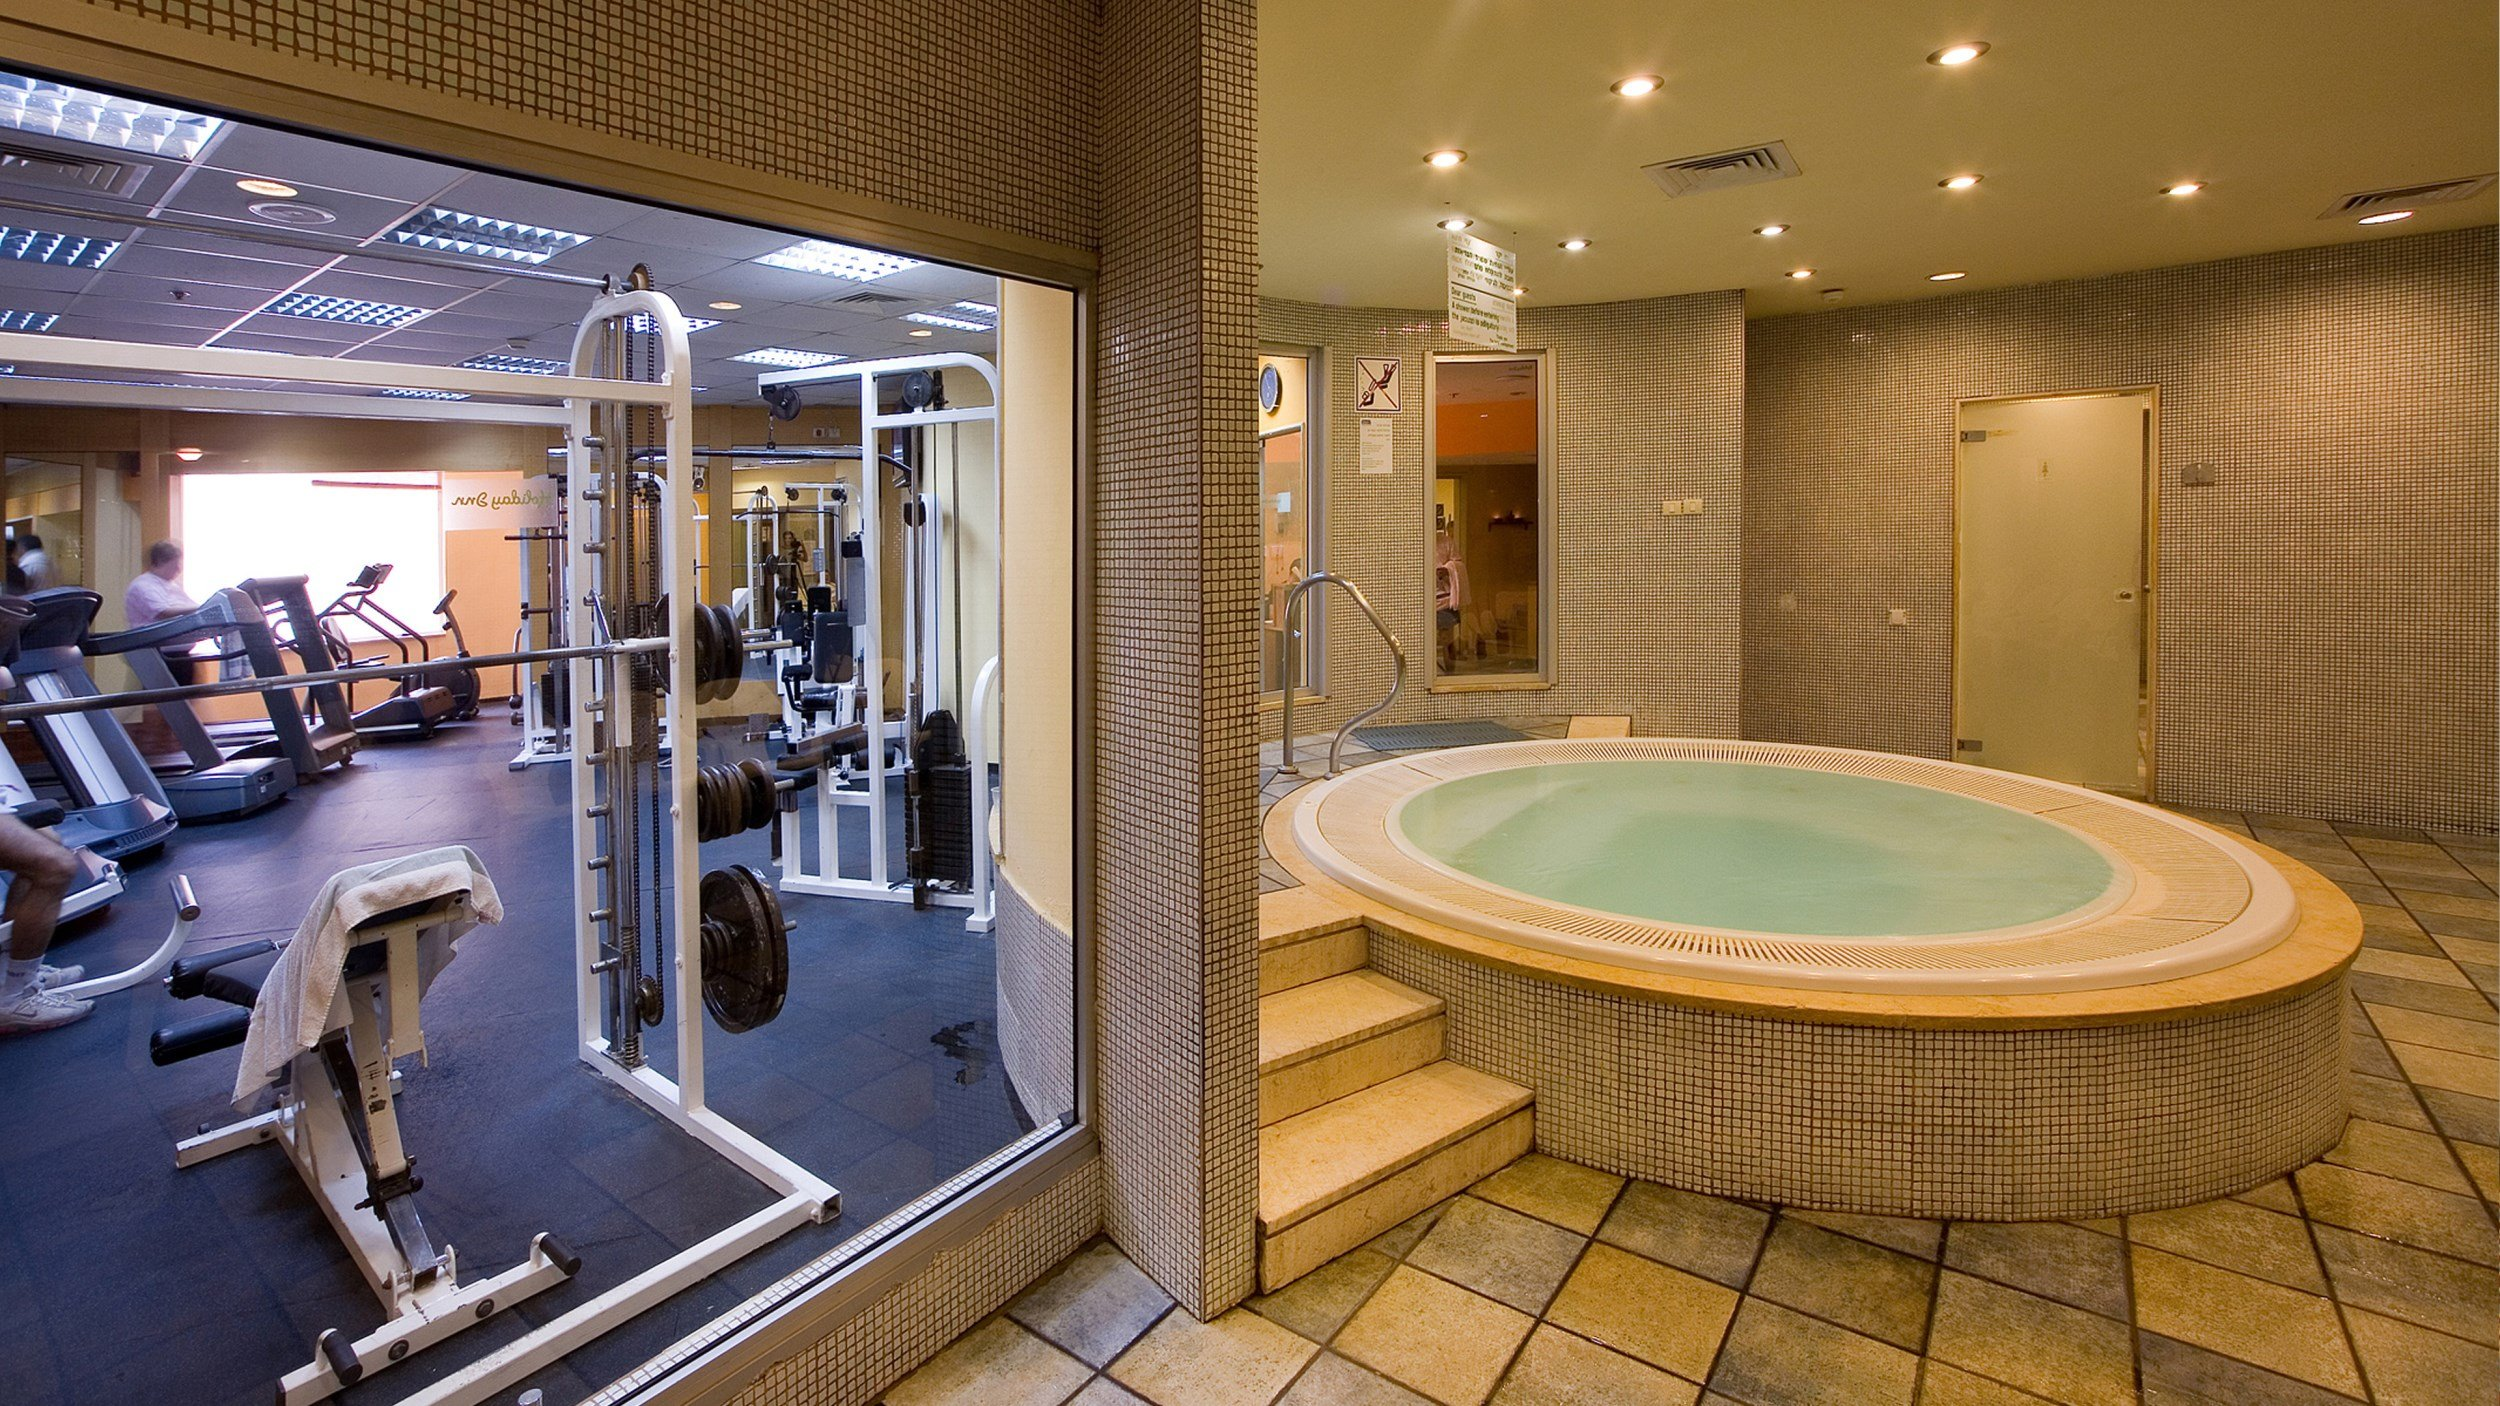 Harlington Ashkelon - Gym and Tub